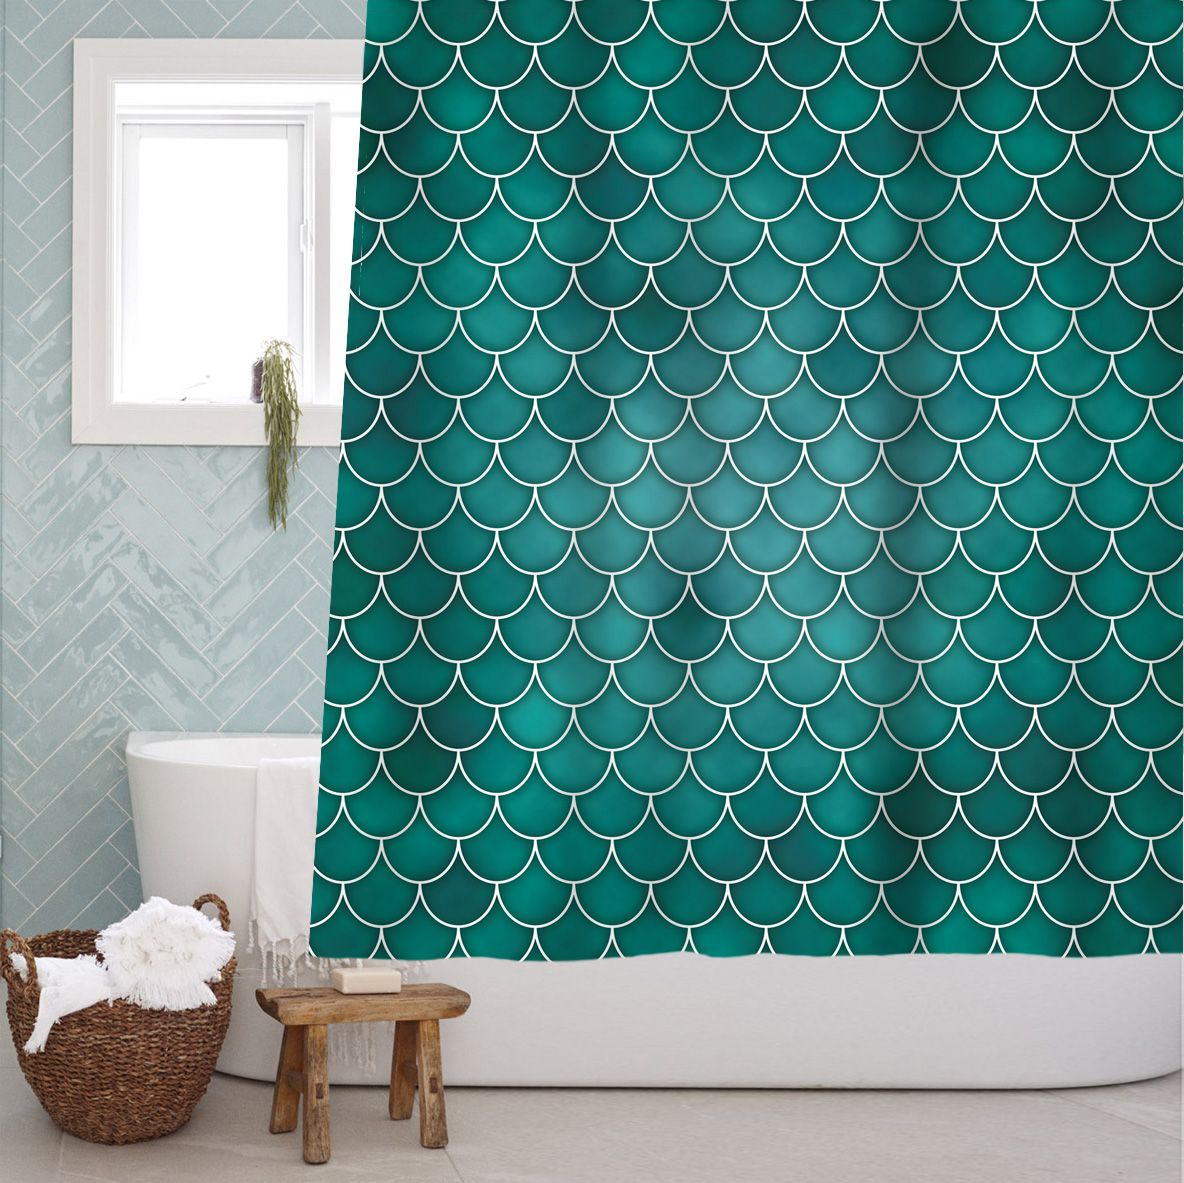 Details About Mermaid Tail Scale Fabric Shower Curtain Bathroom